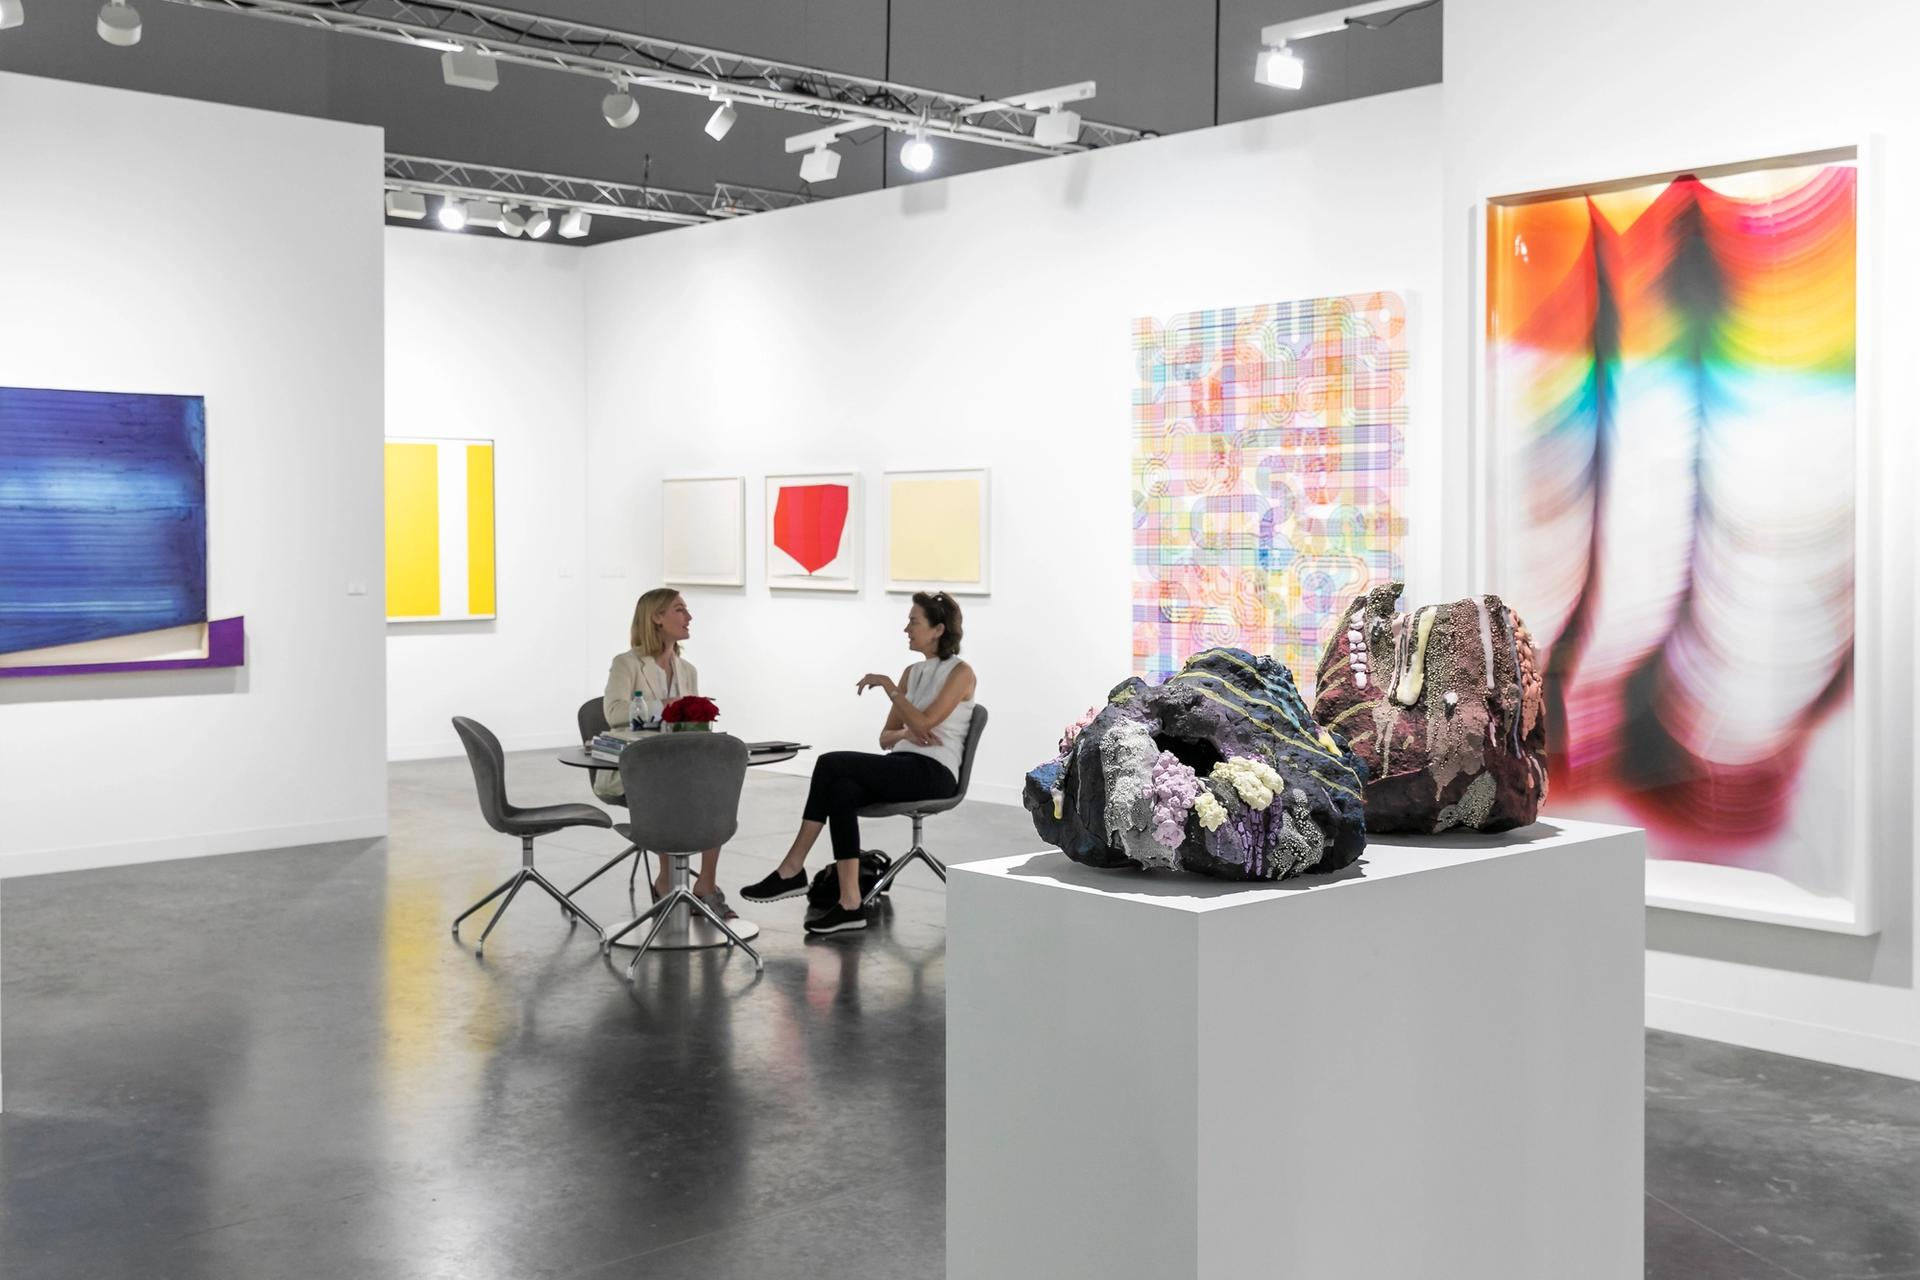 Employment in the arts is predominantly female, a new report finds © Art Basel